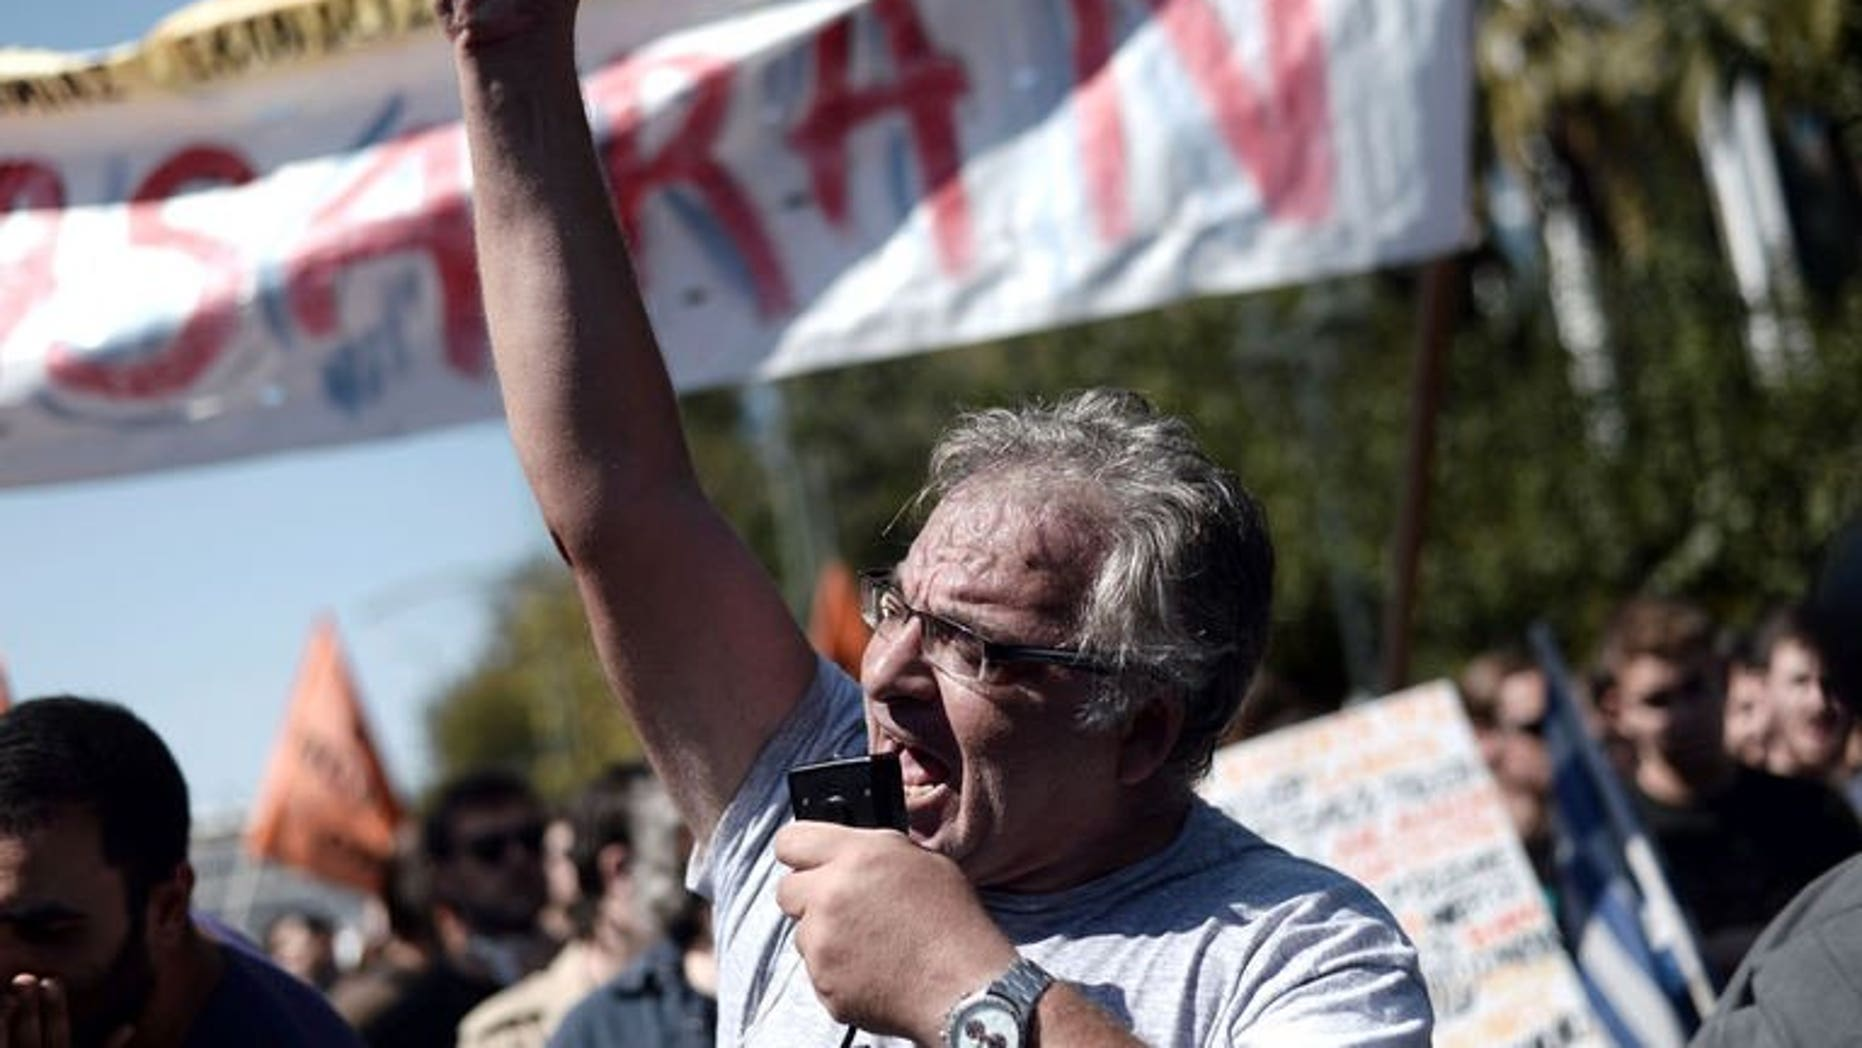 A Greek demonstrator shouts slogans during a rally in Athens, on September 24, 2013. Thousands of Greek civil servants have protested at the start of a fresh strike against job cuts pushed by the government in return for international bailout loans.